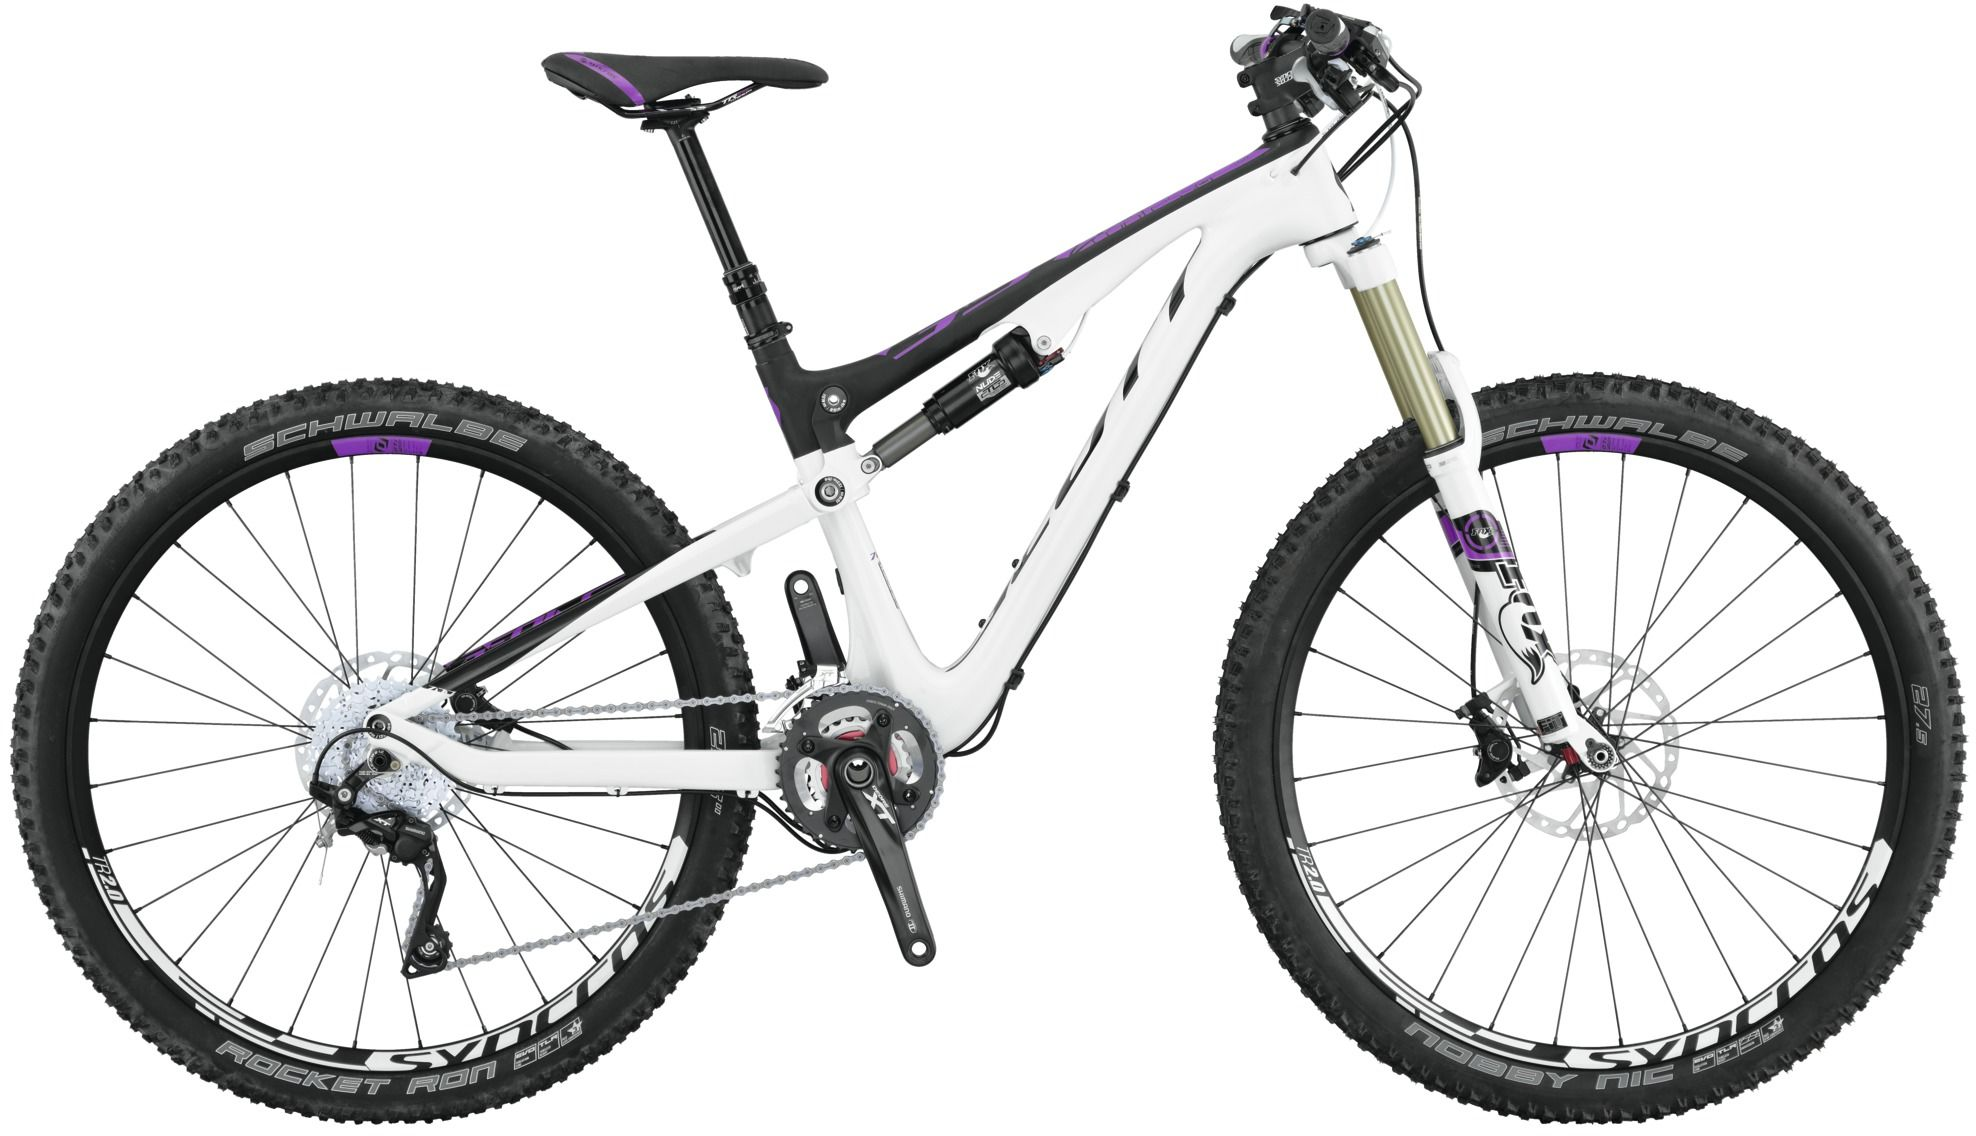 44b9f7f7f75 Scott Contessa Genius 700 2015 review - The Bike List